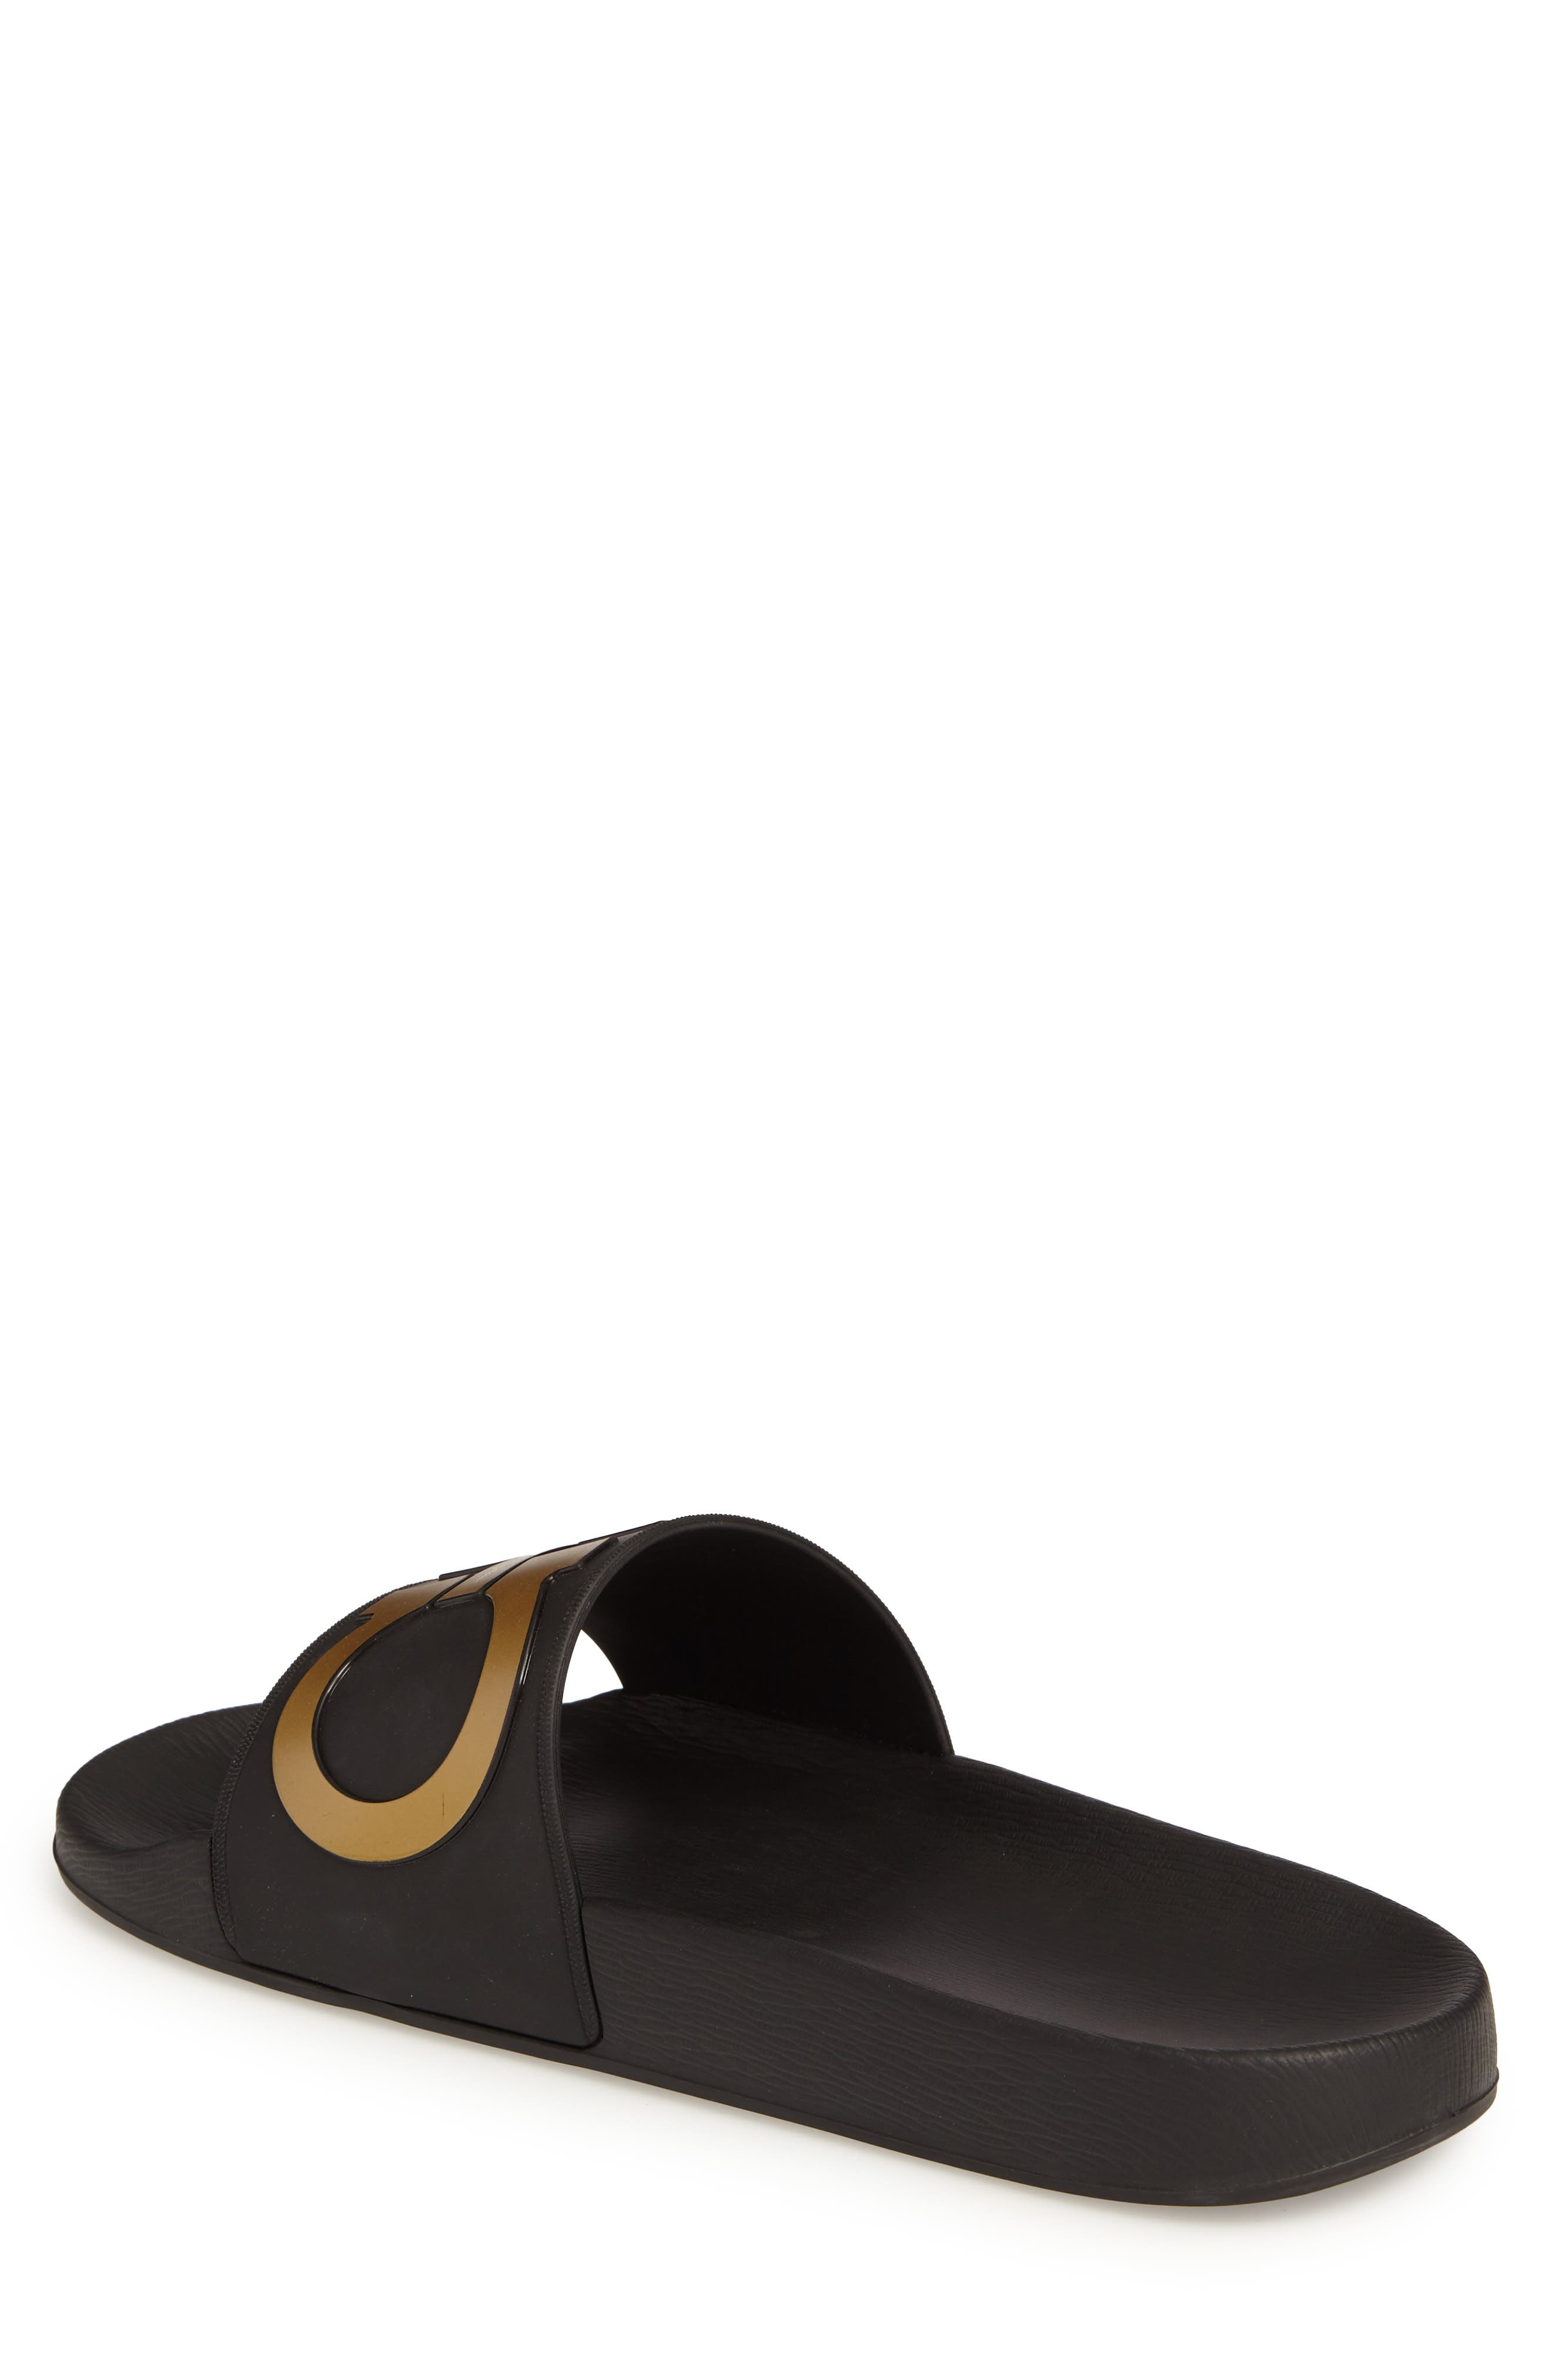 Groove 2 Slide Sandal,                             Alternate thumbnail 2, color,                             BLACK/GOLD